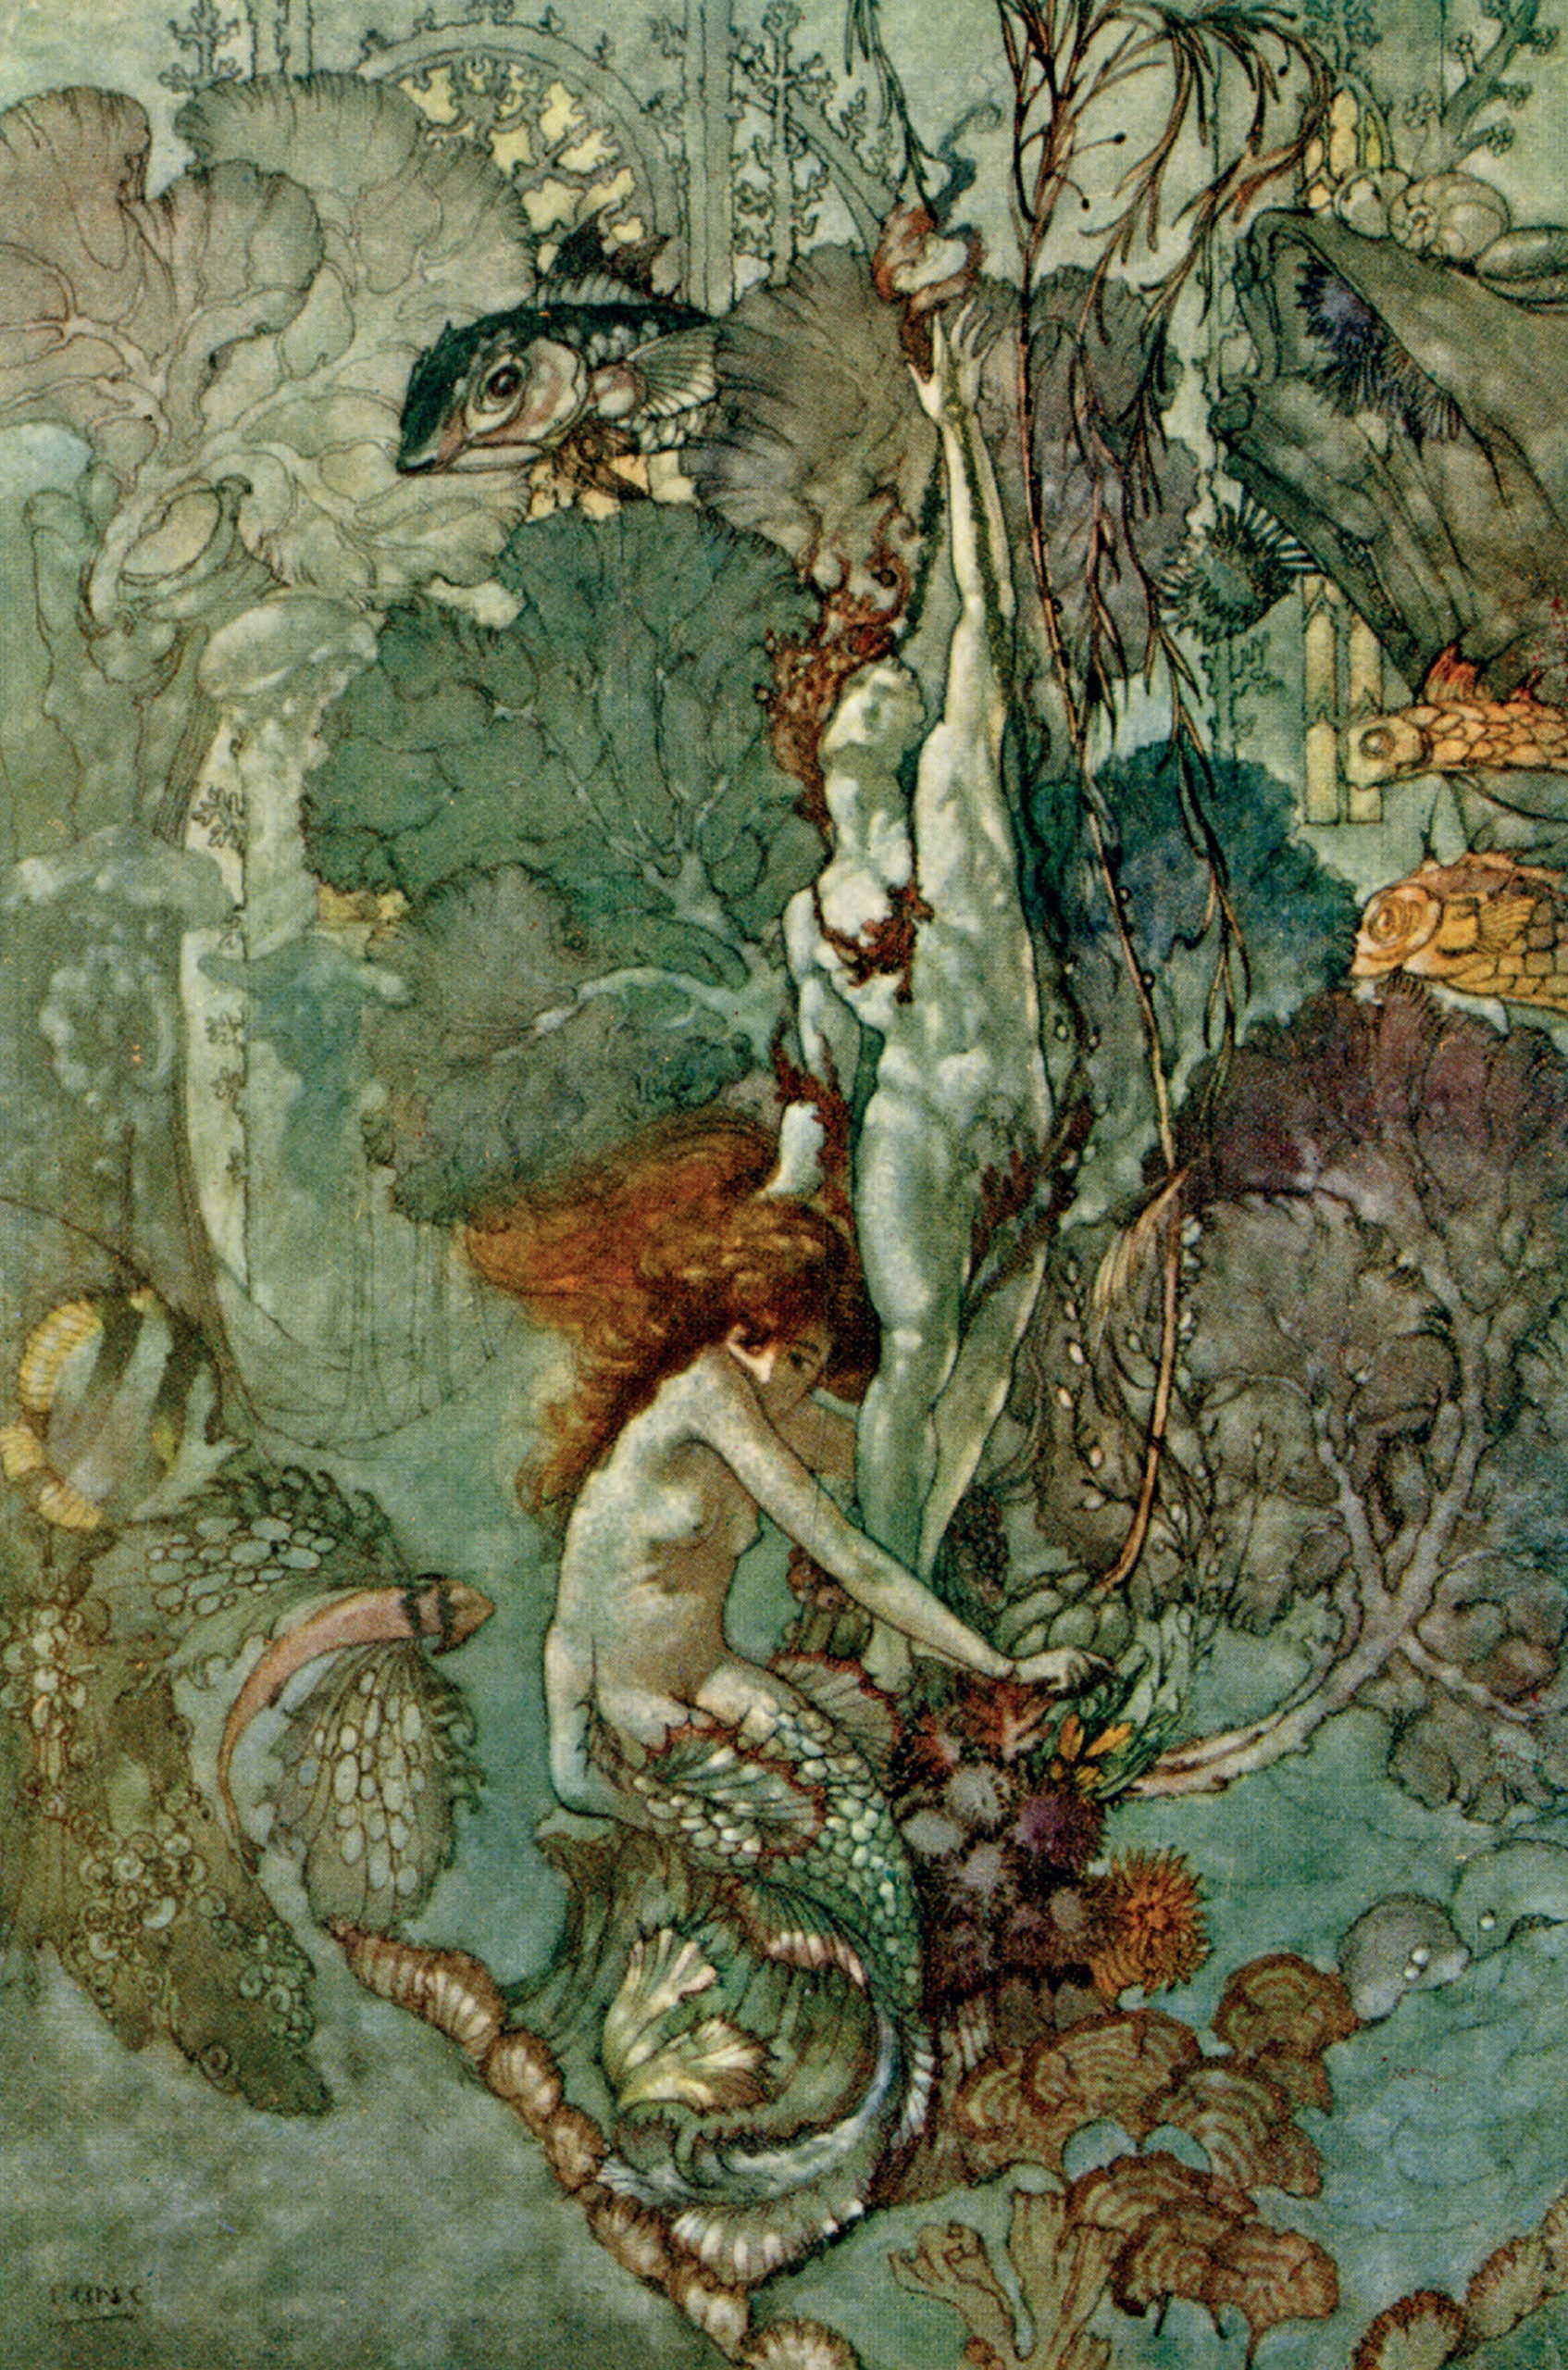 The Little Mermaid illustration by A. Duncan Carse